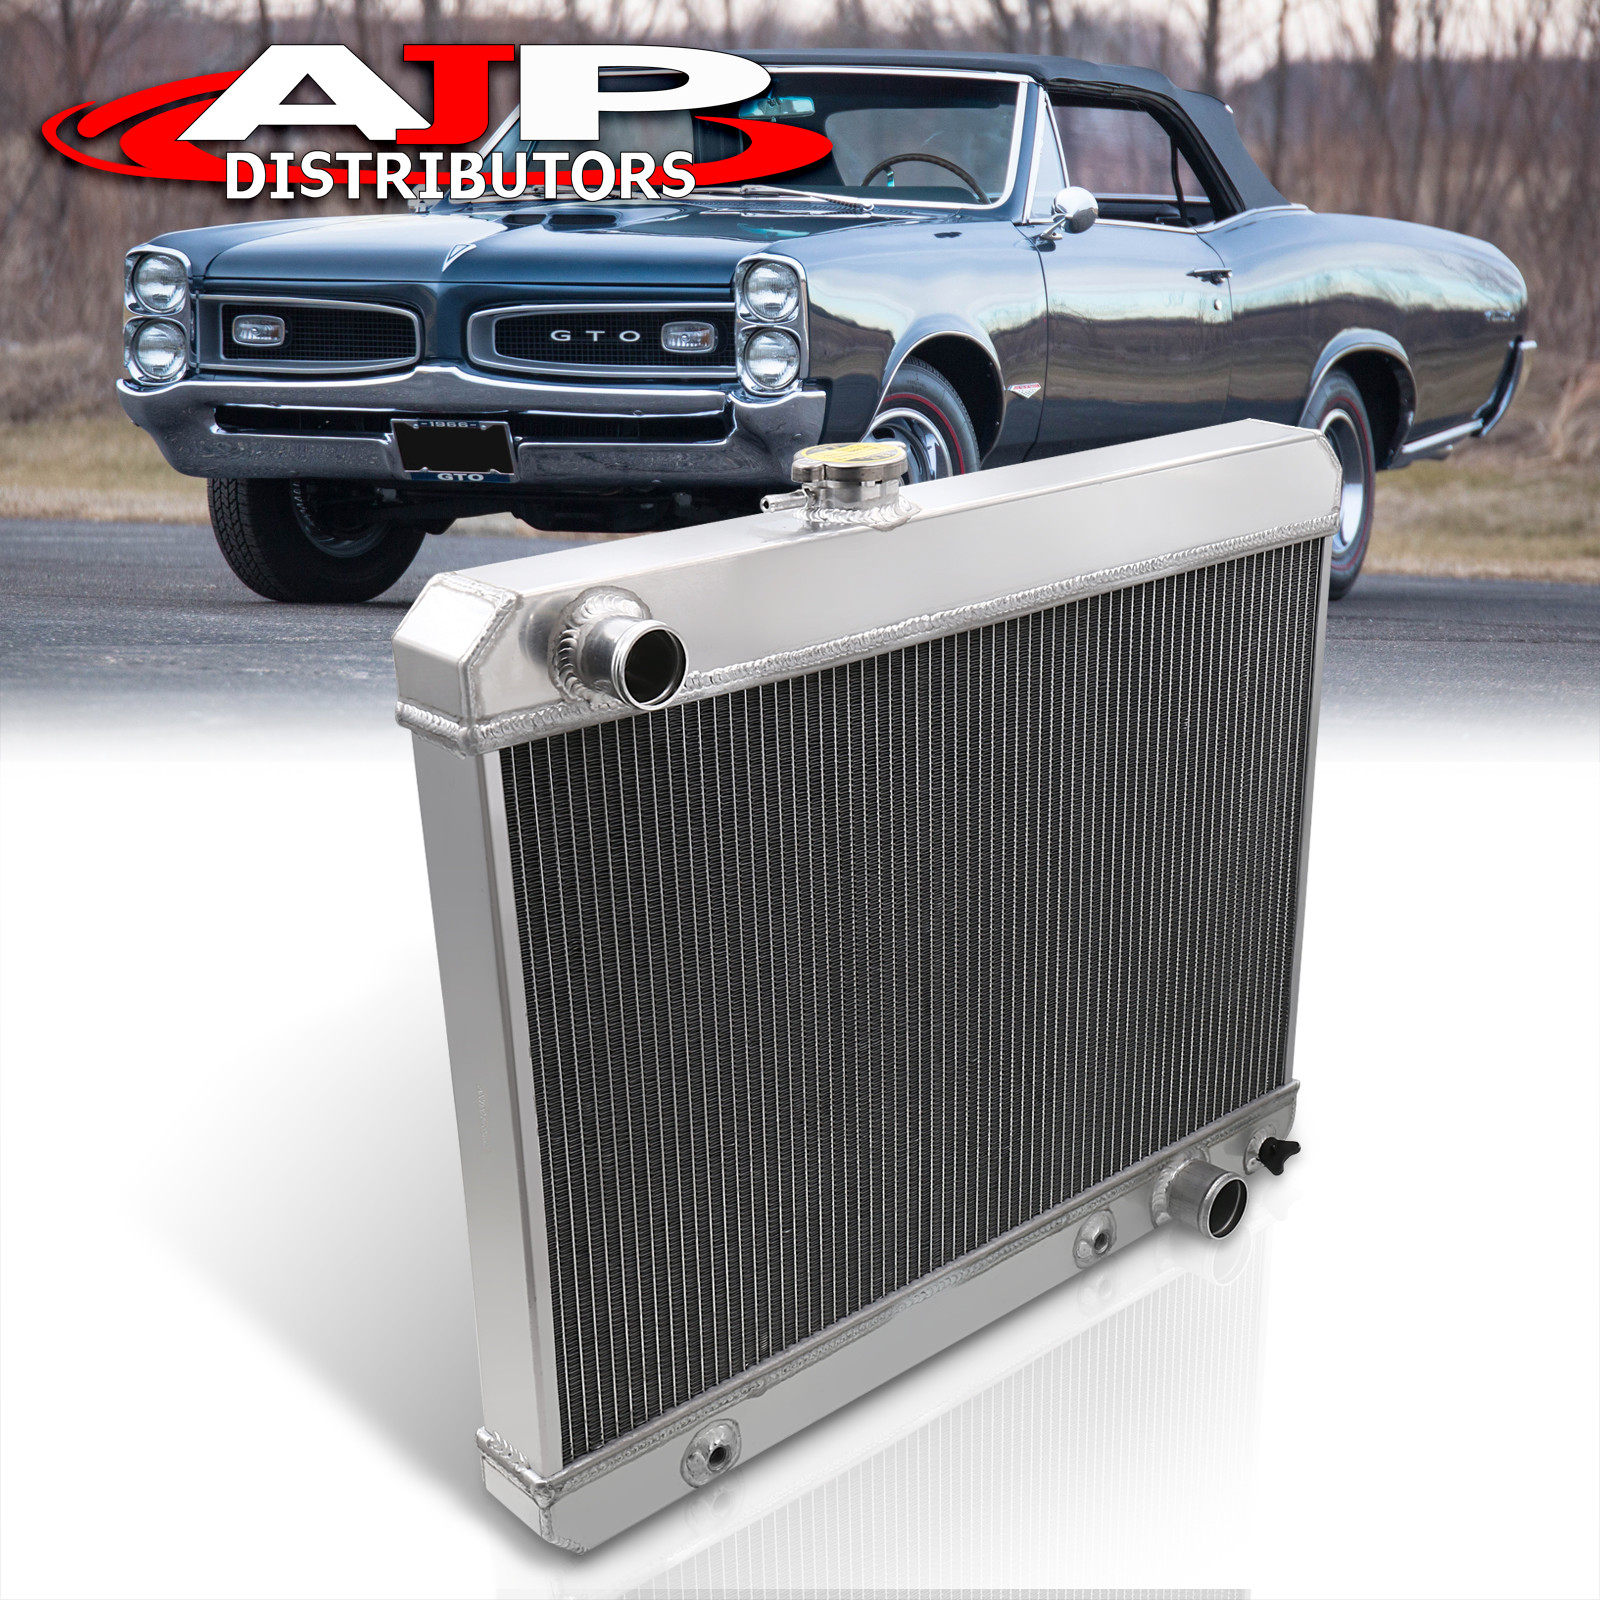 Aluminum Radiator Fit For 1965-1967 Pontiac GTO //Lemans//Tempest 1966 5.3L V8